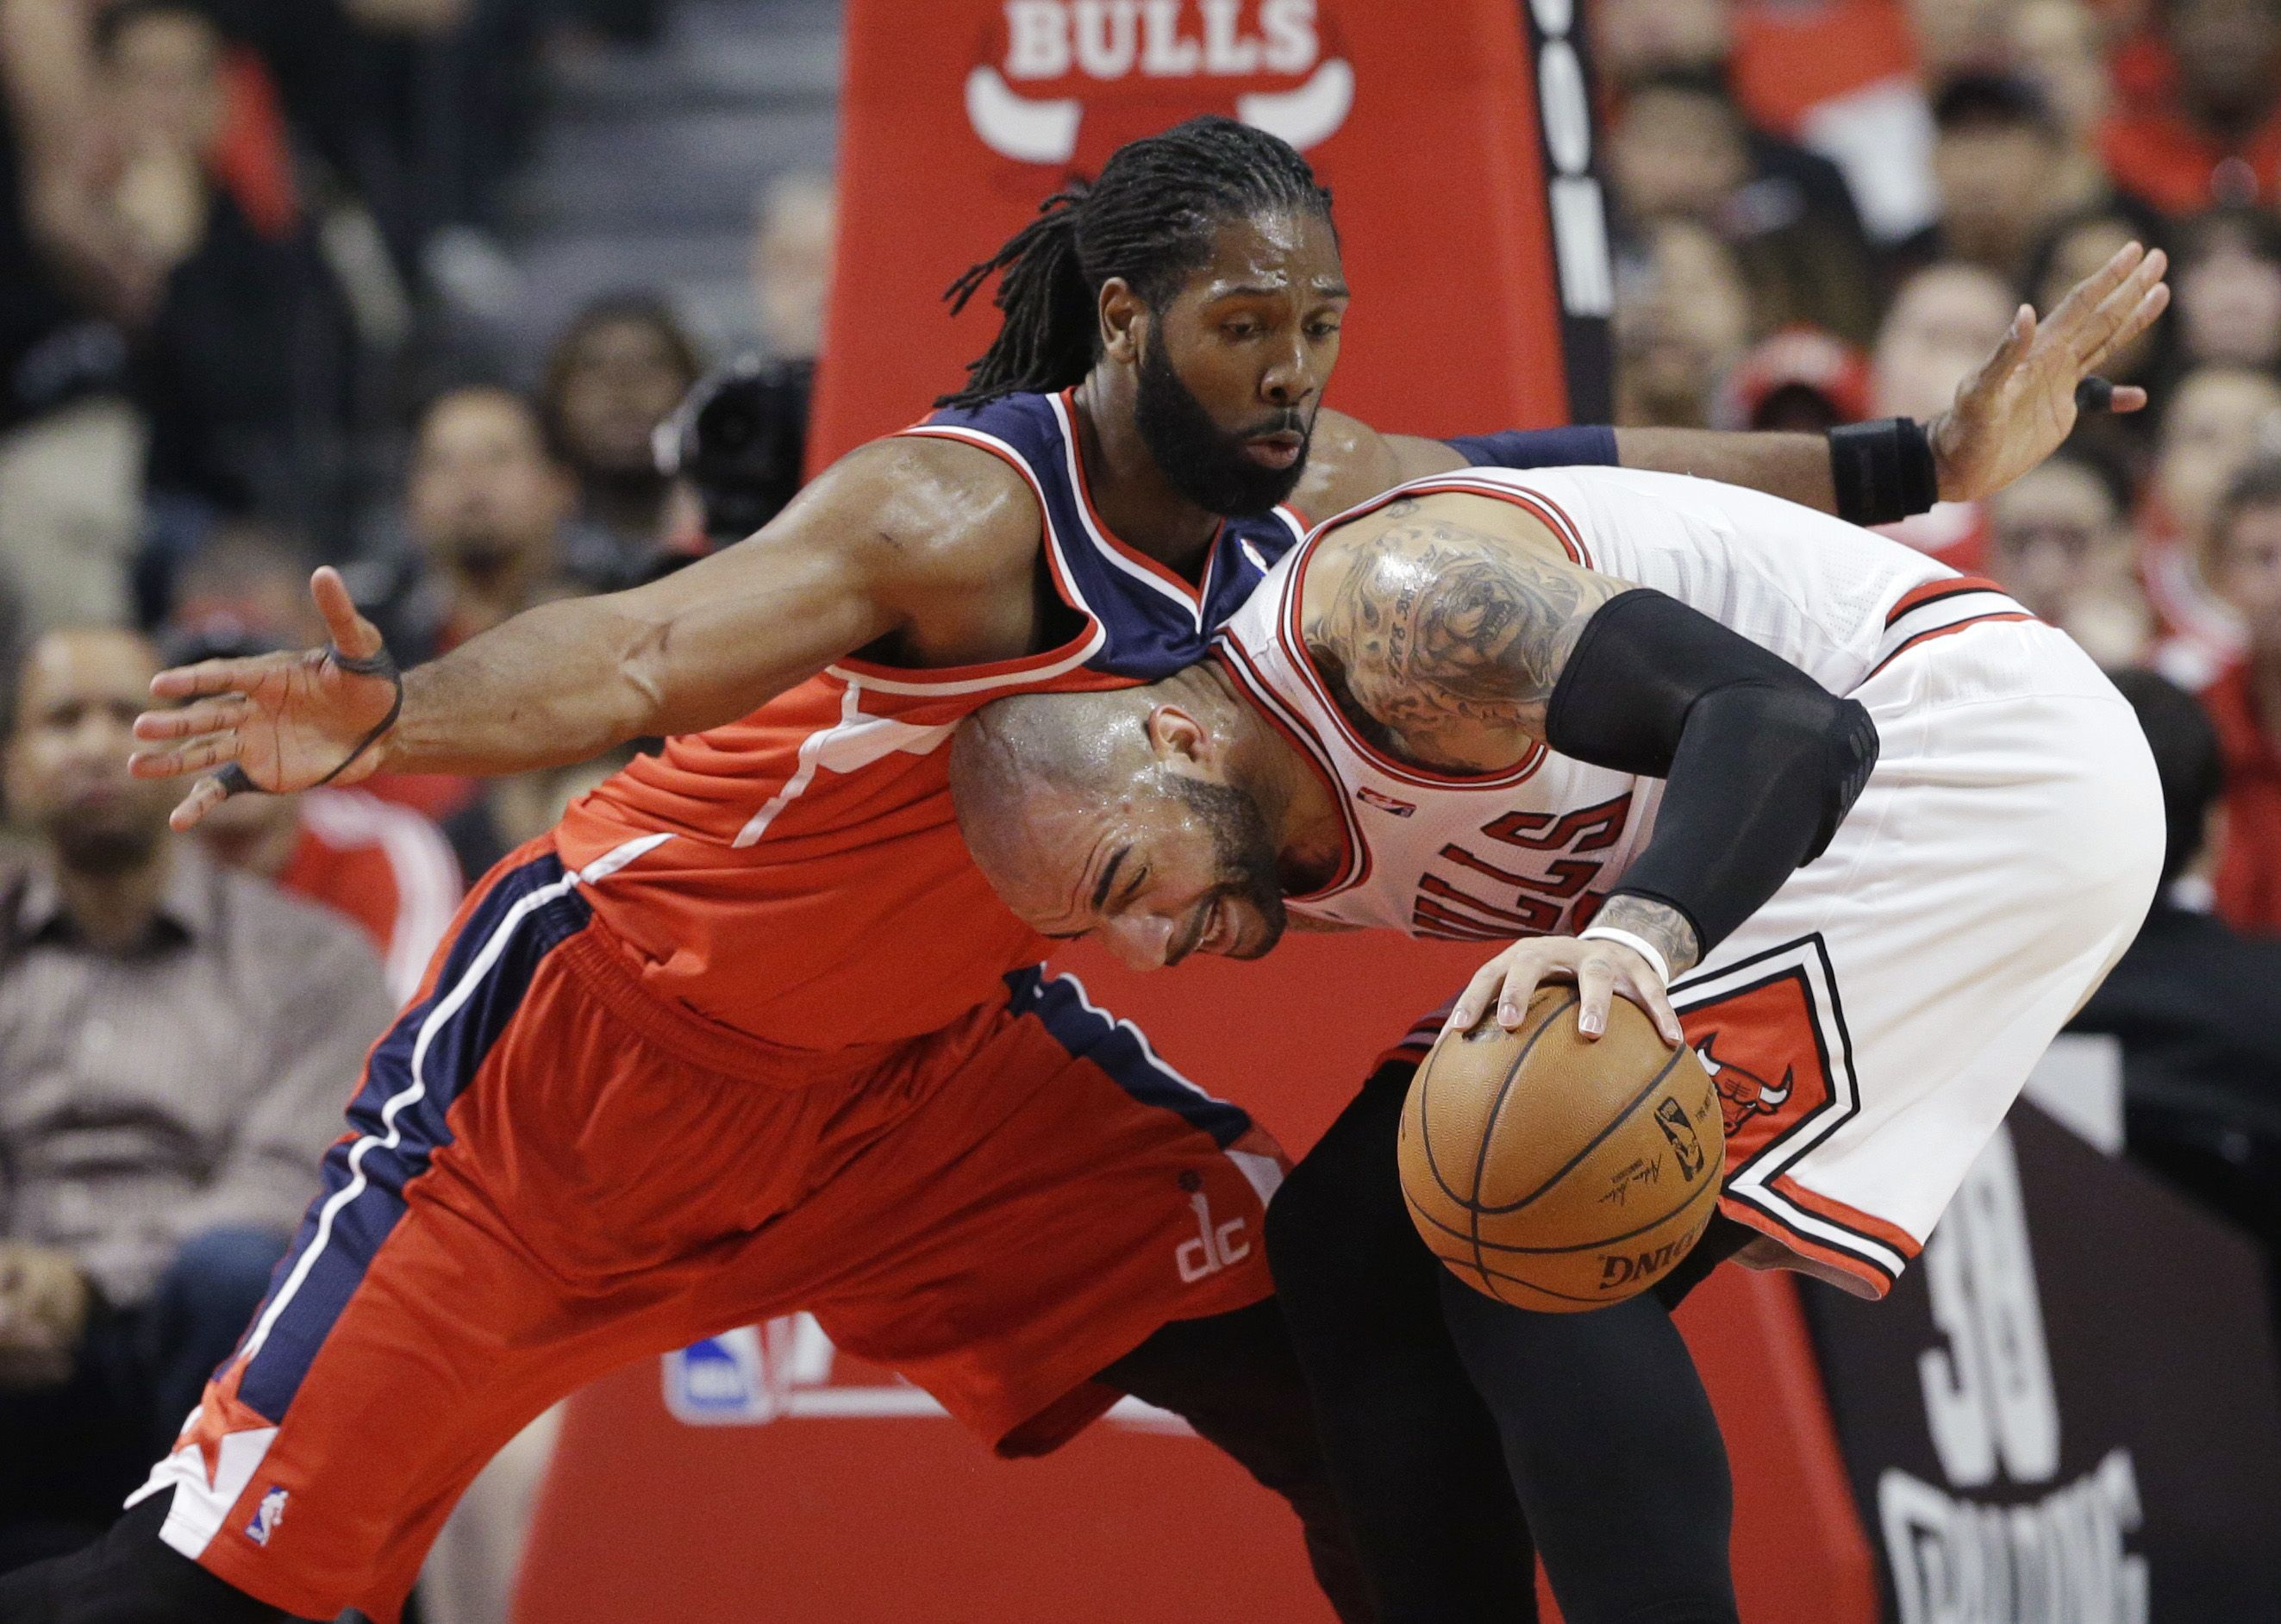 Bulls have no answer for Nene as Wizards take Game 1 Nba